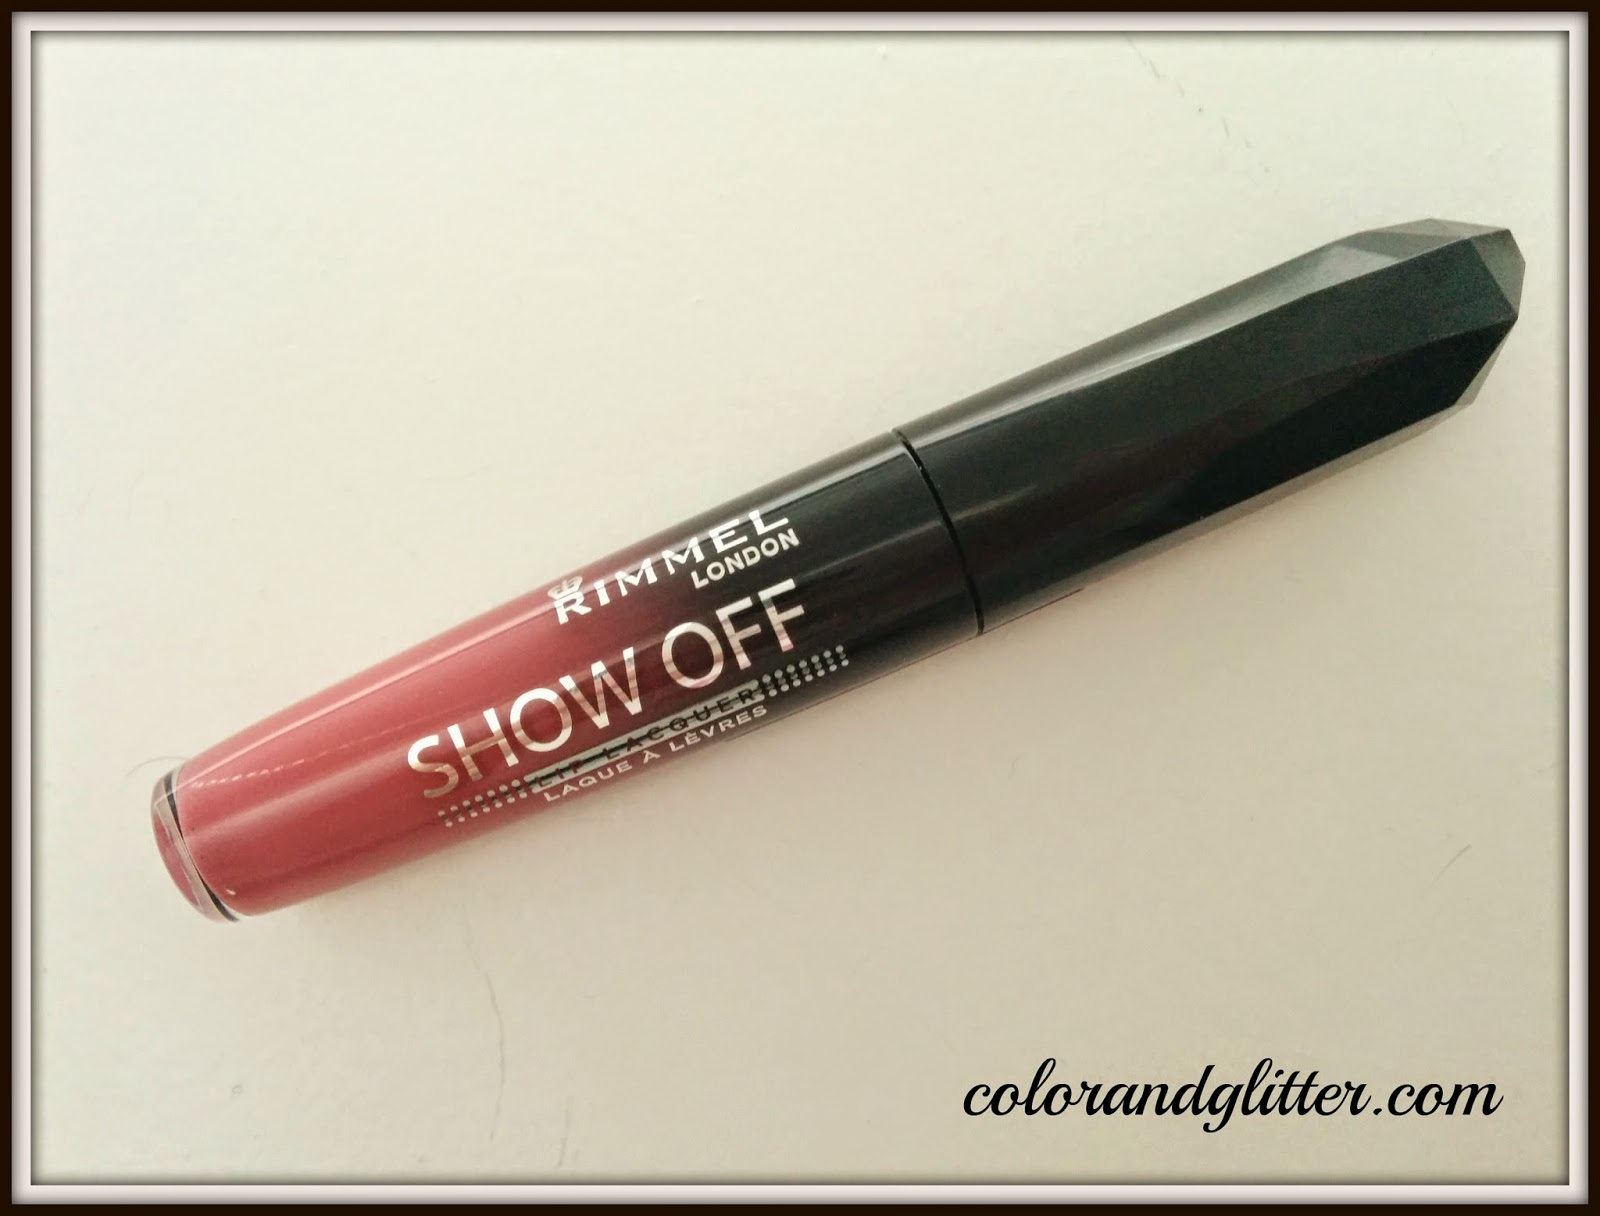 Rimmel Show off Lip Lacquer in Celestial